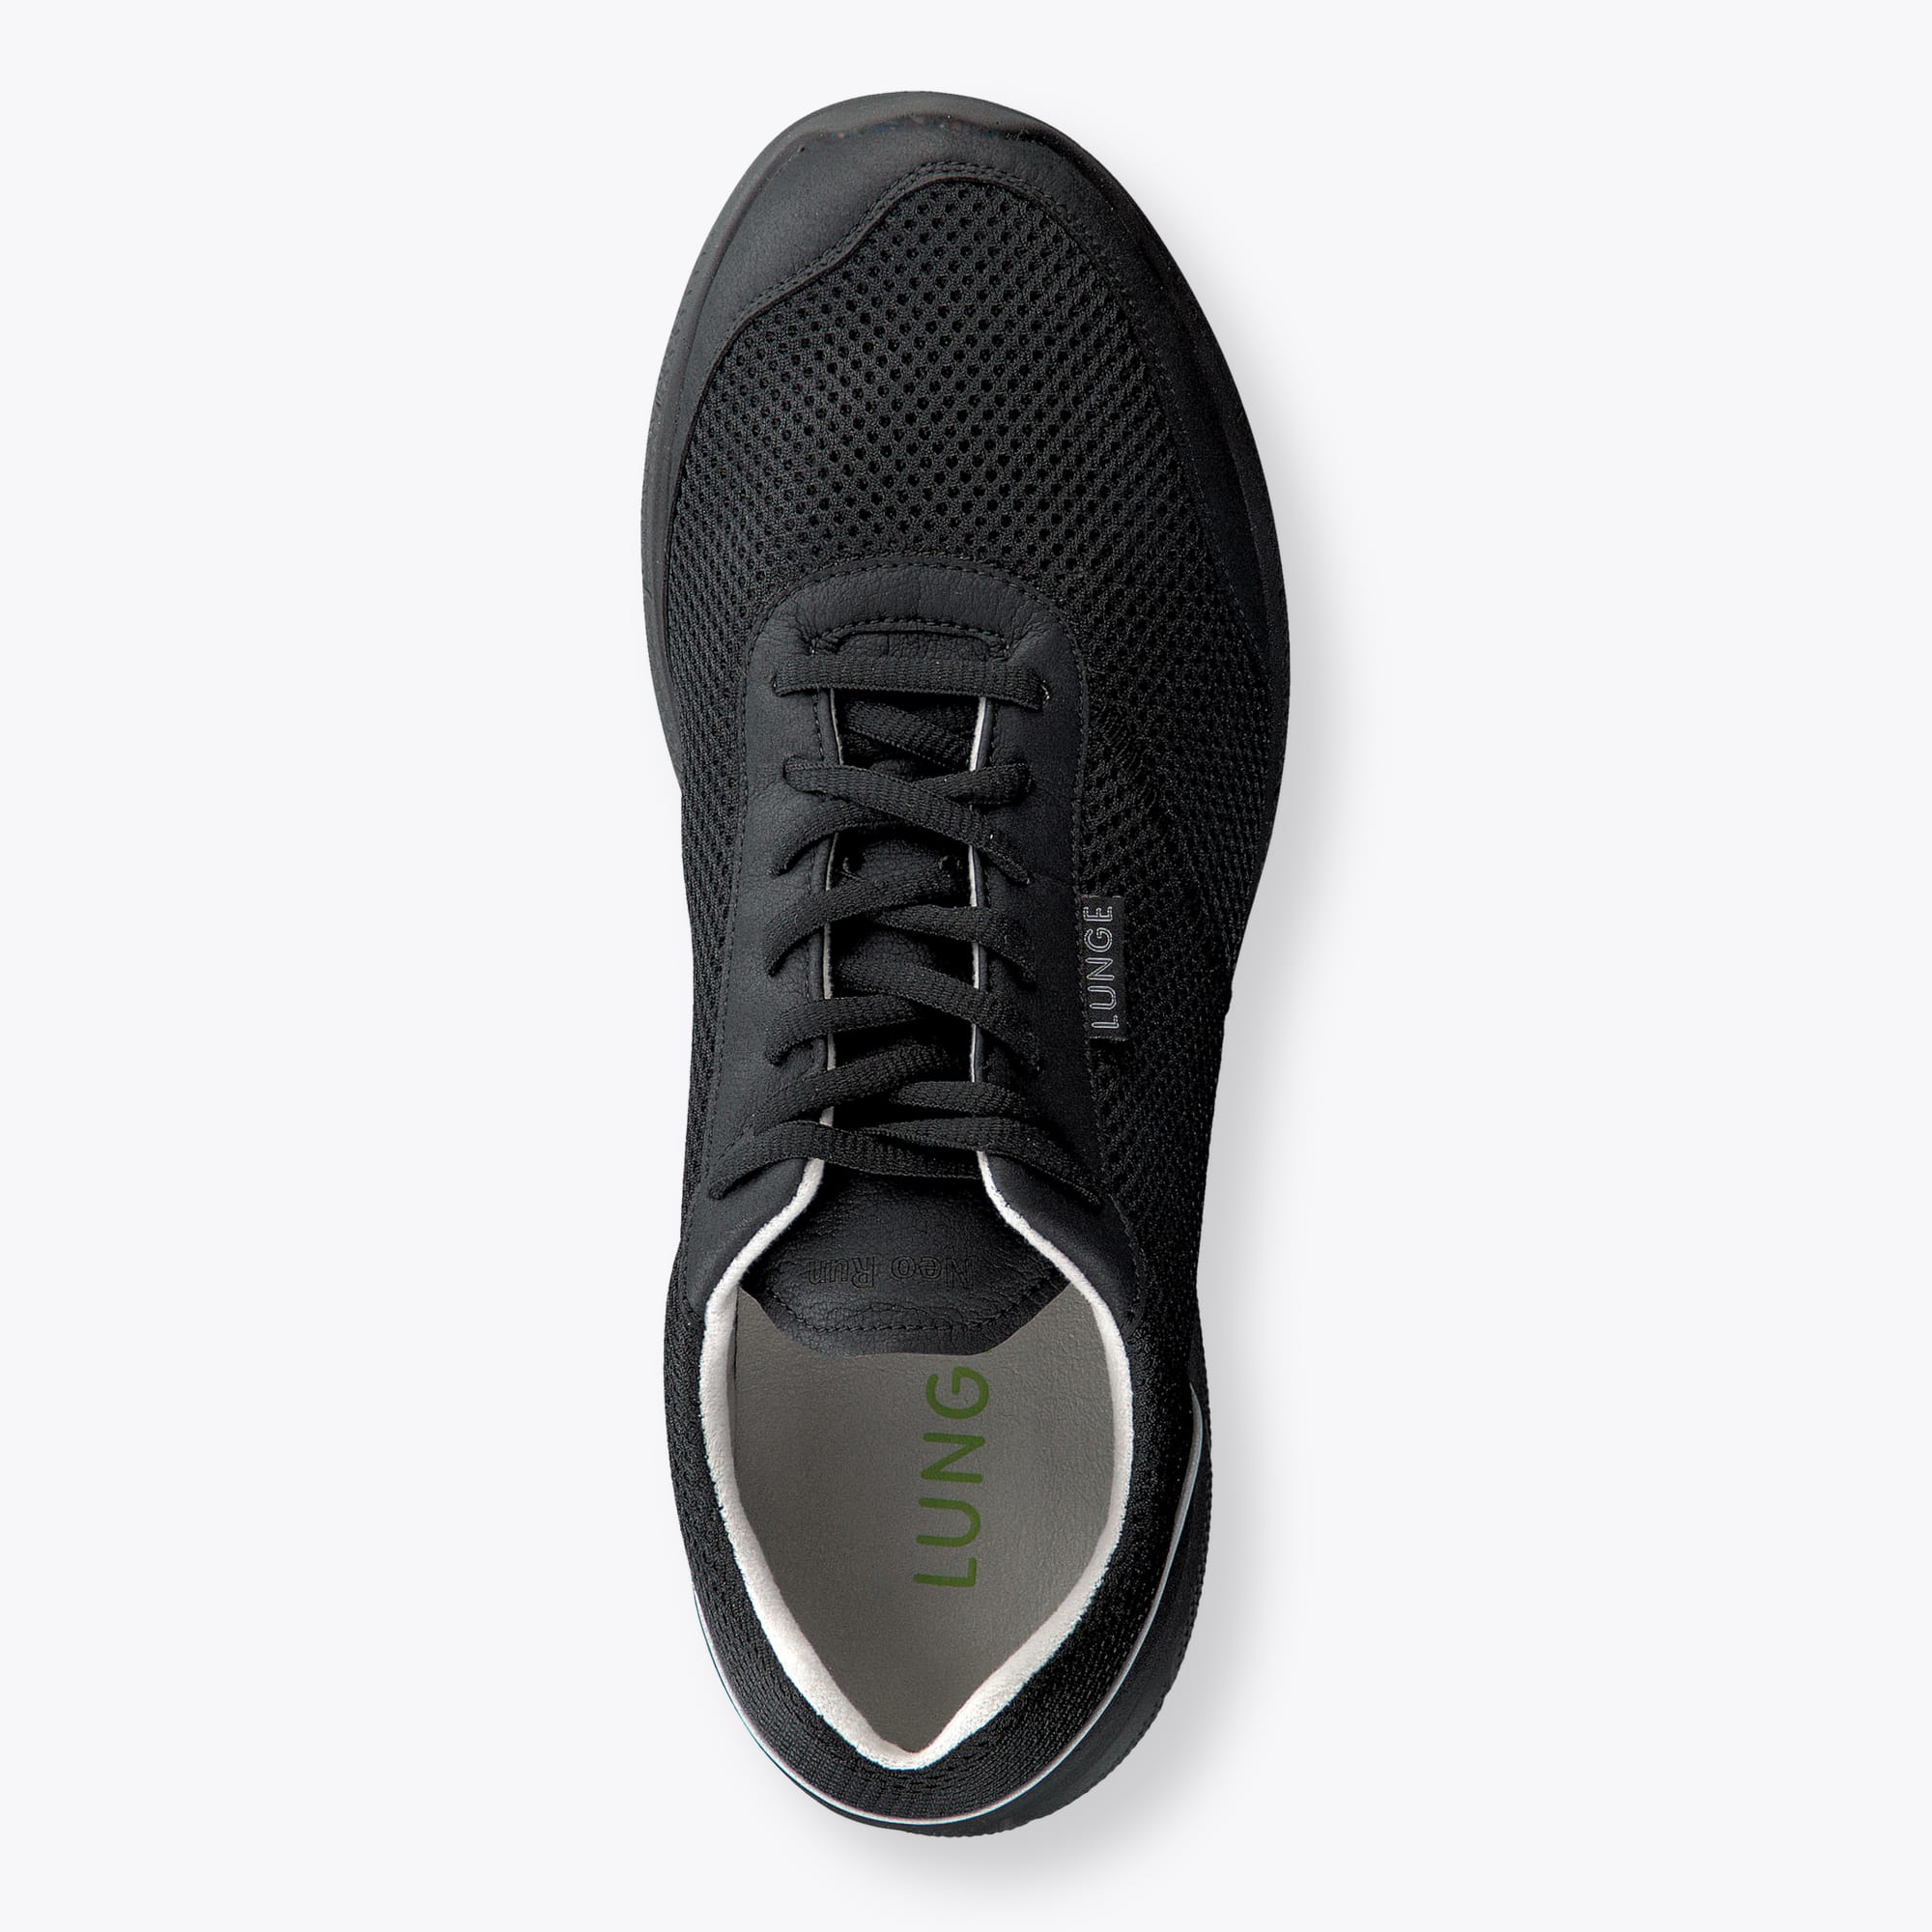 Neo Run in Black